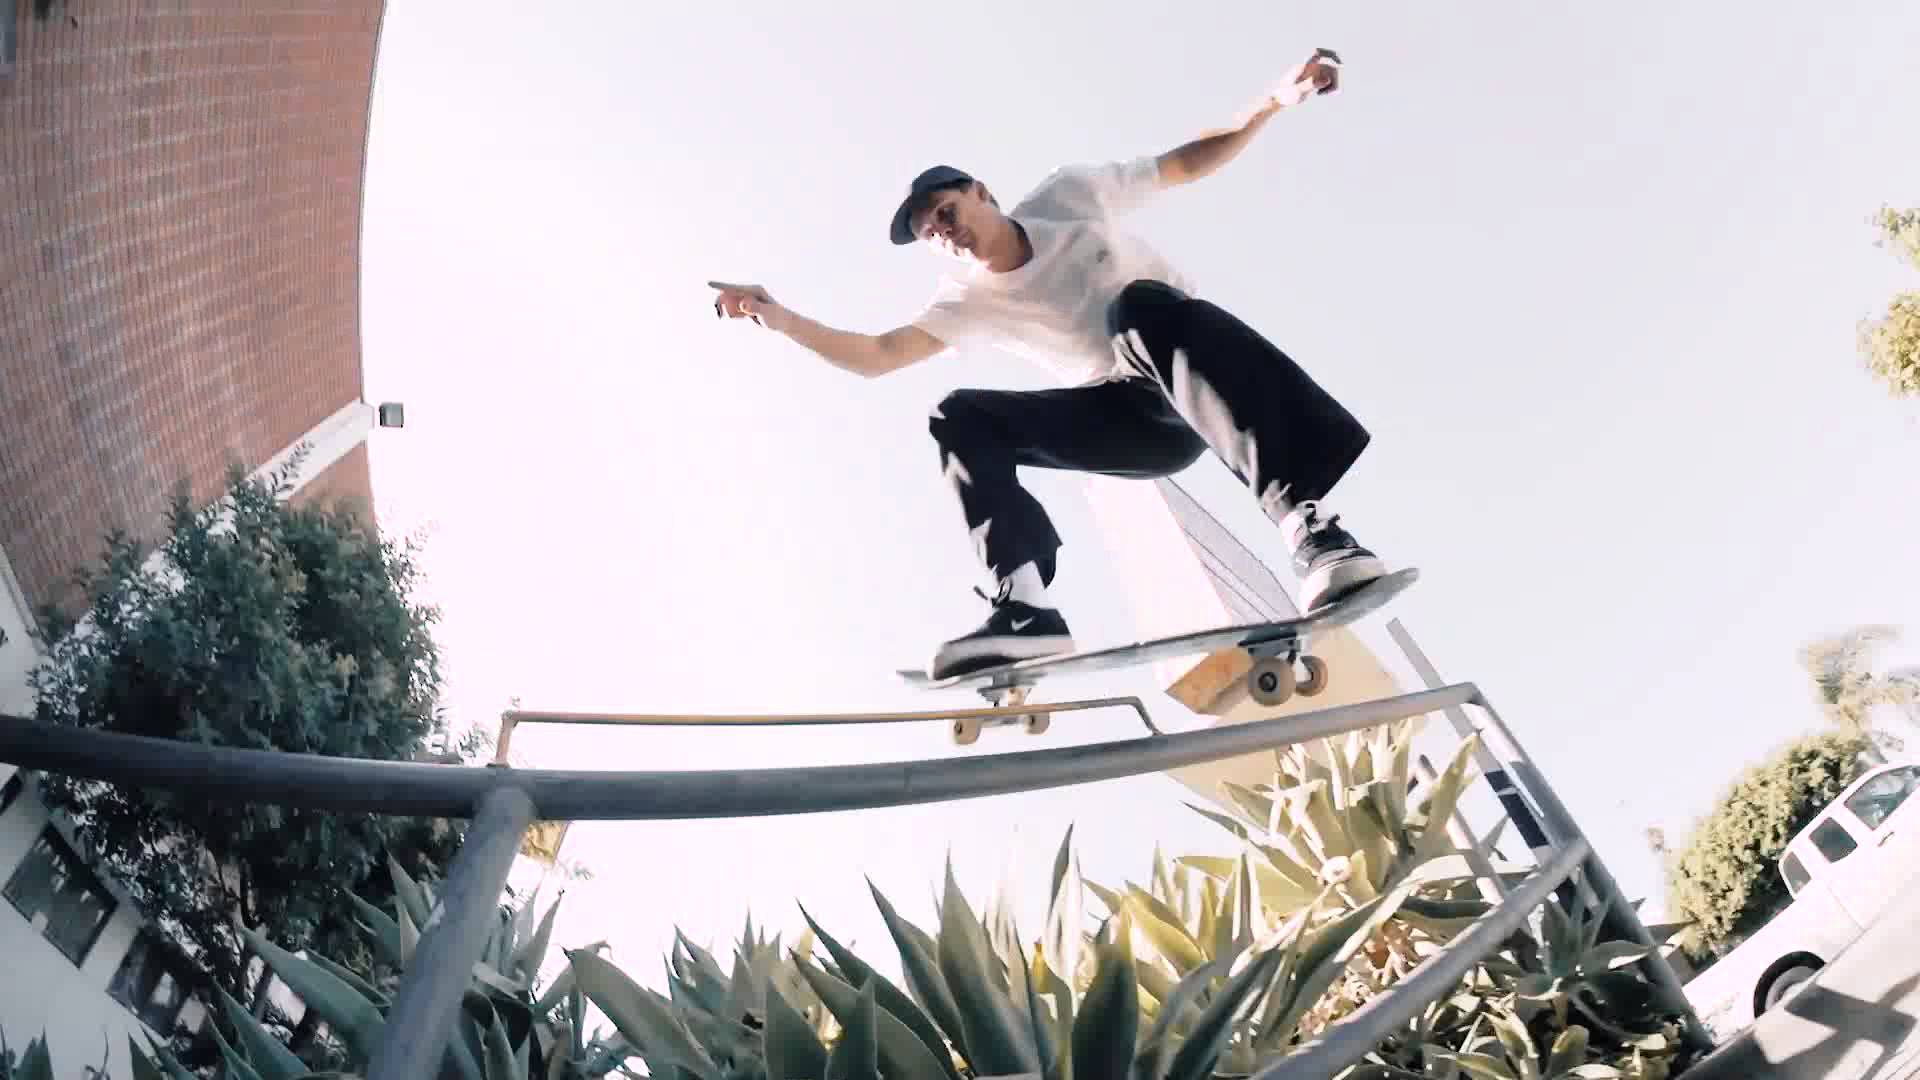 Eric Koston's Part From Nike SB 'The Chronicles: Vol. 3'